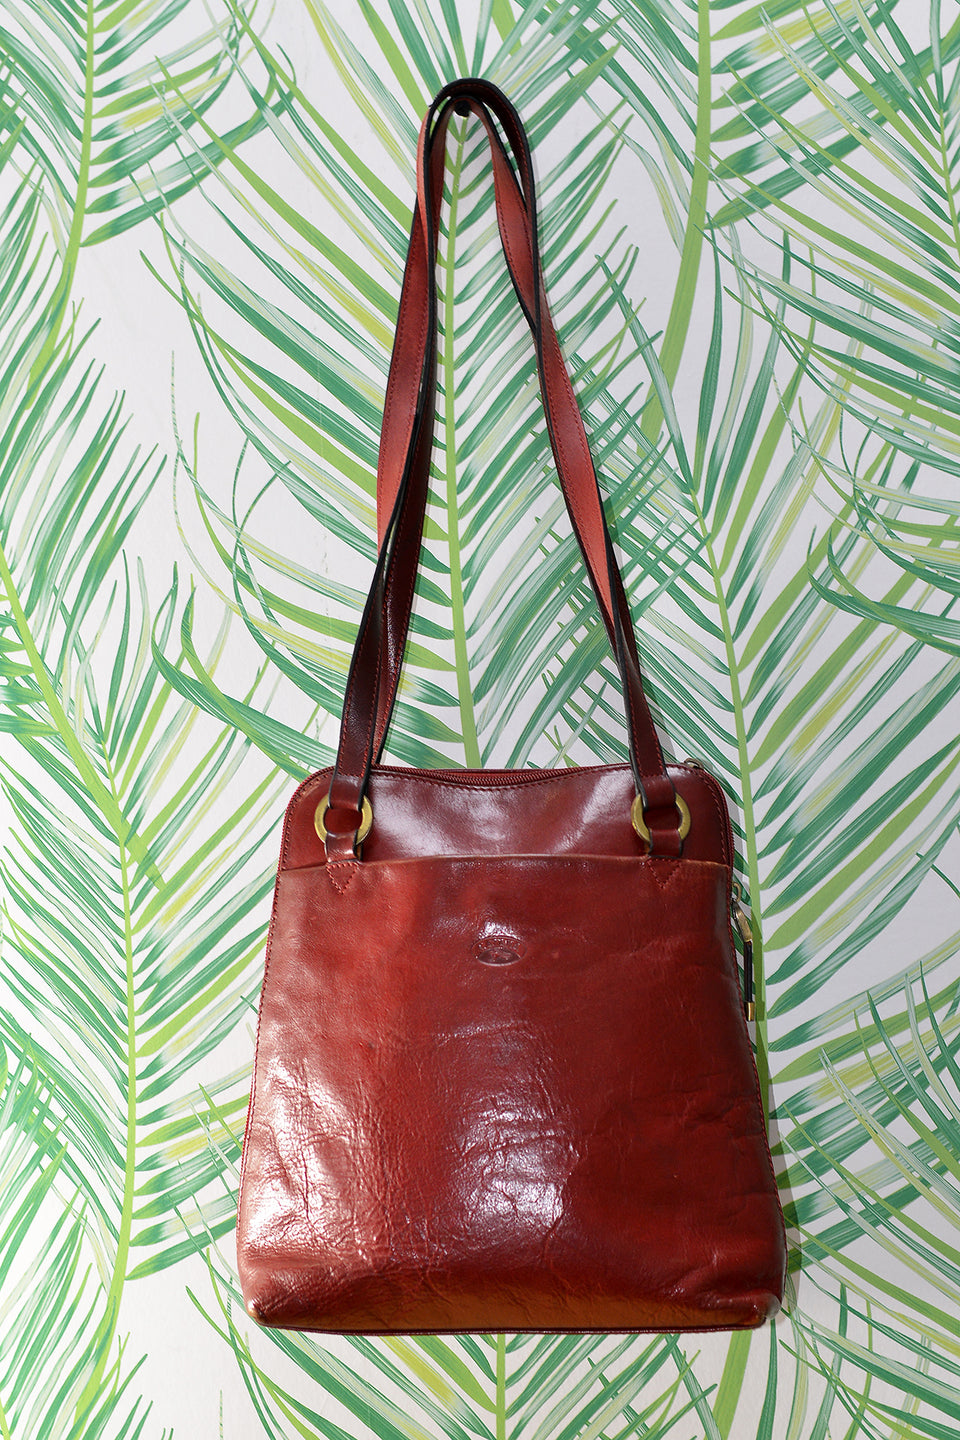 KATANA Red Leather Compact Handbag/Backpack with Pockets. Pre-loved.